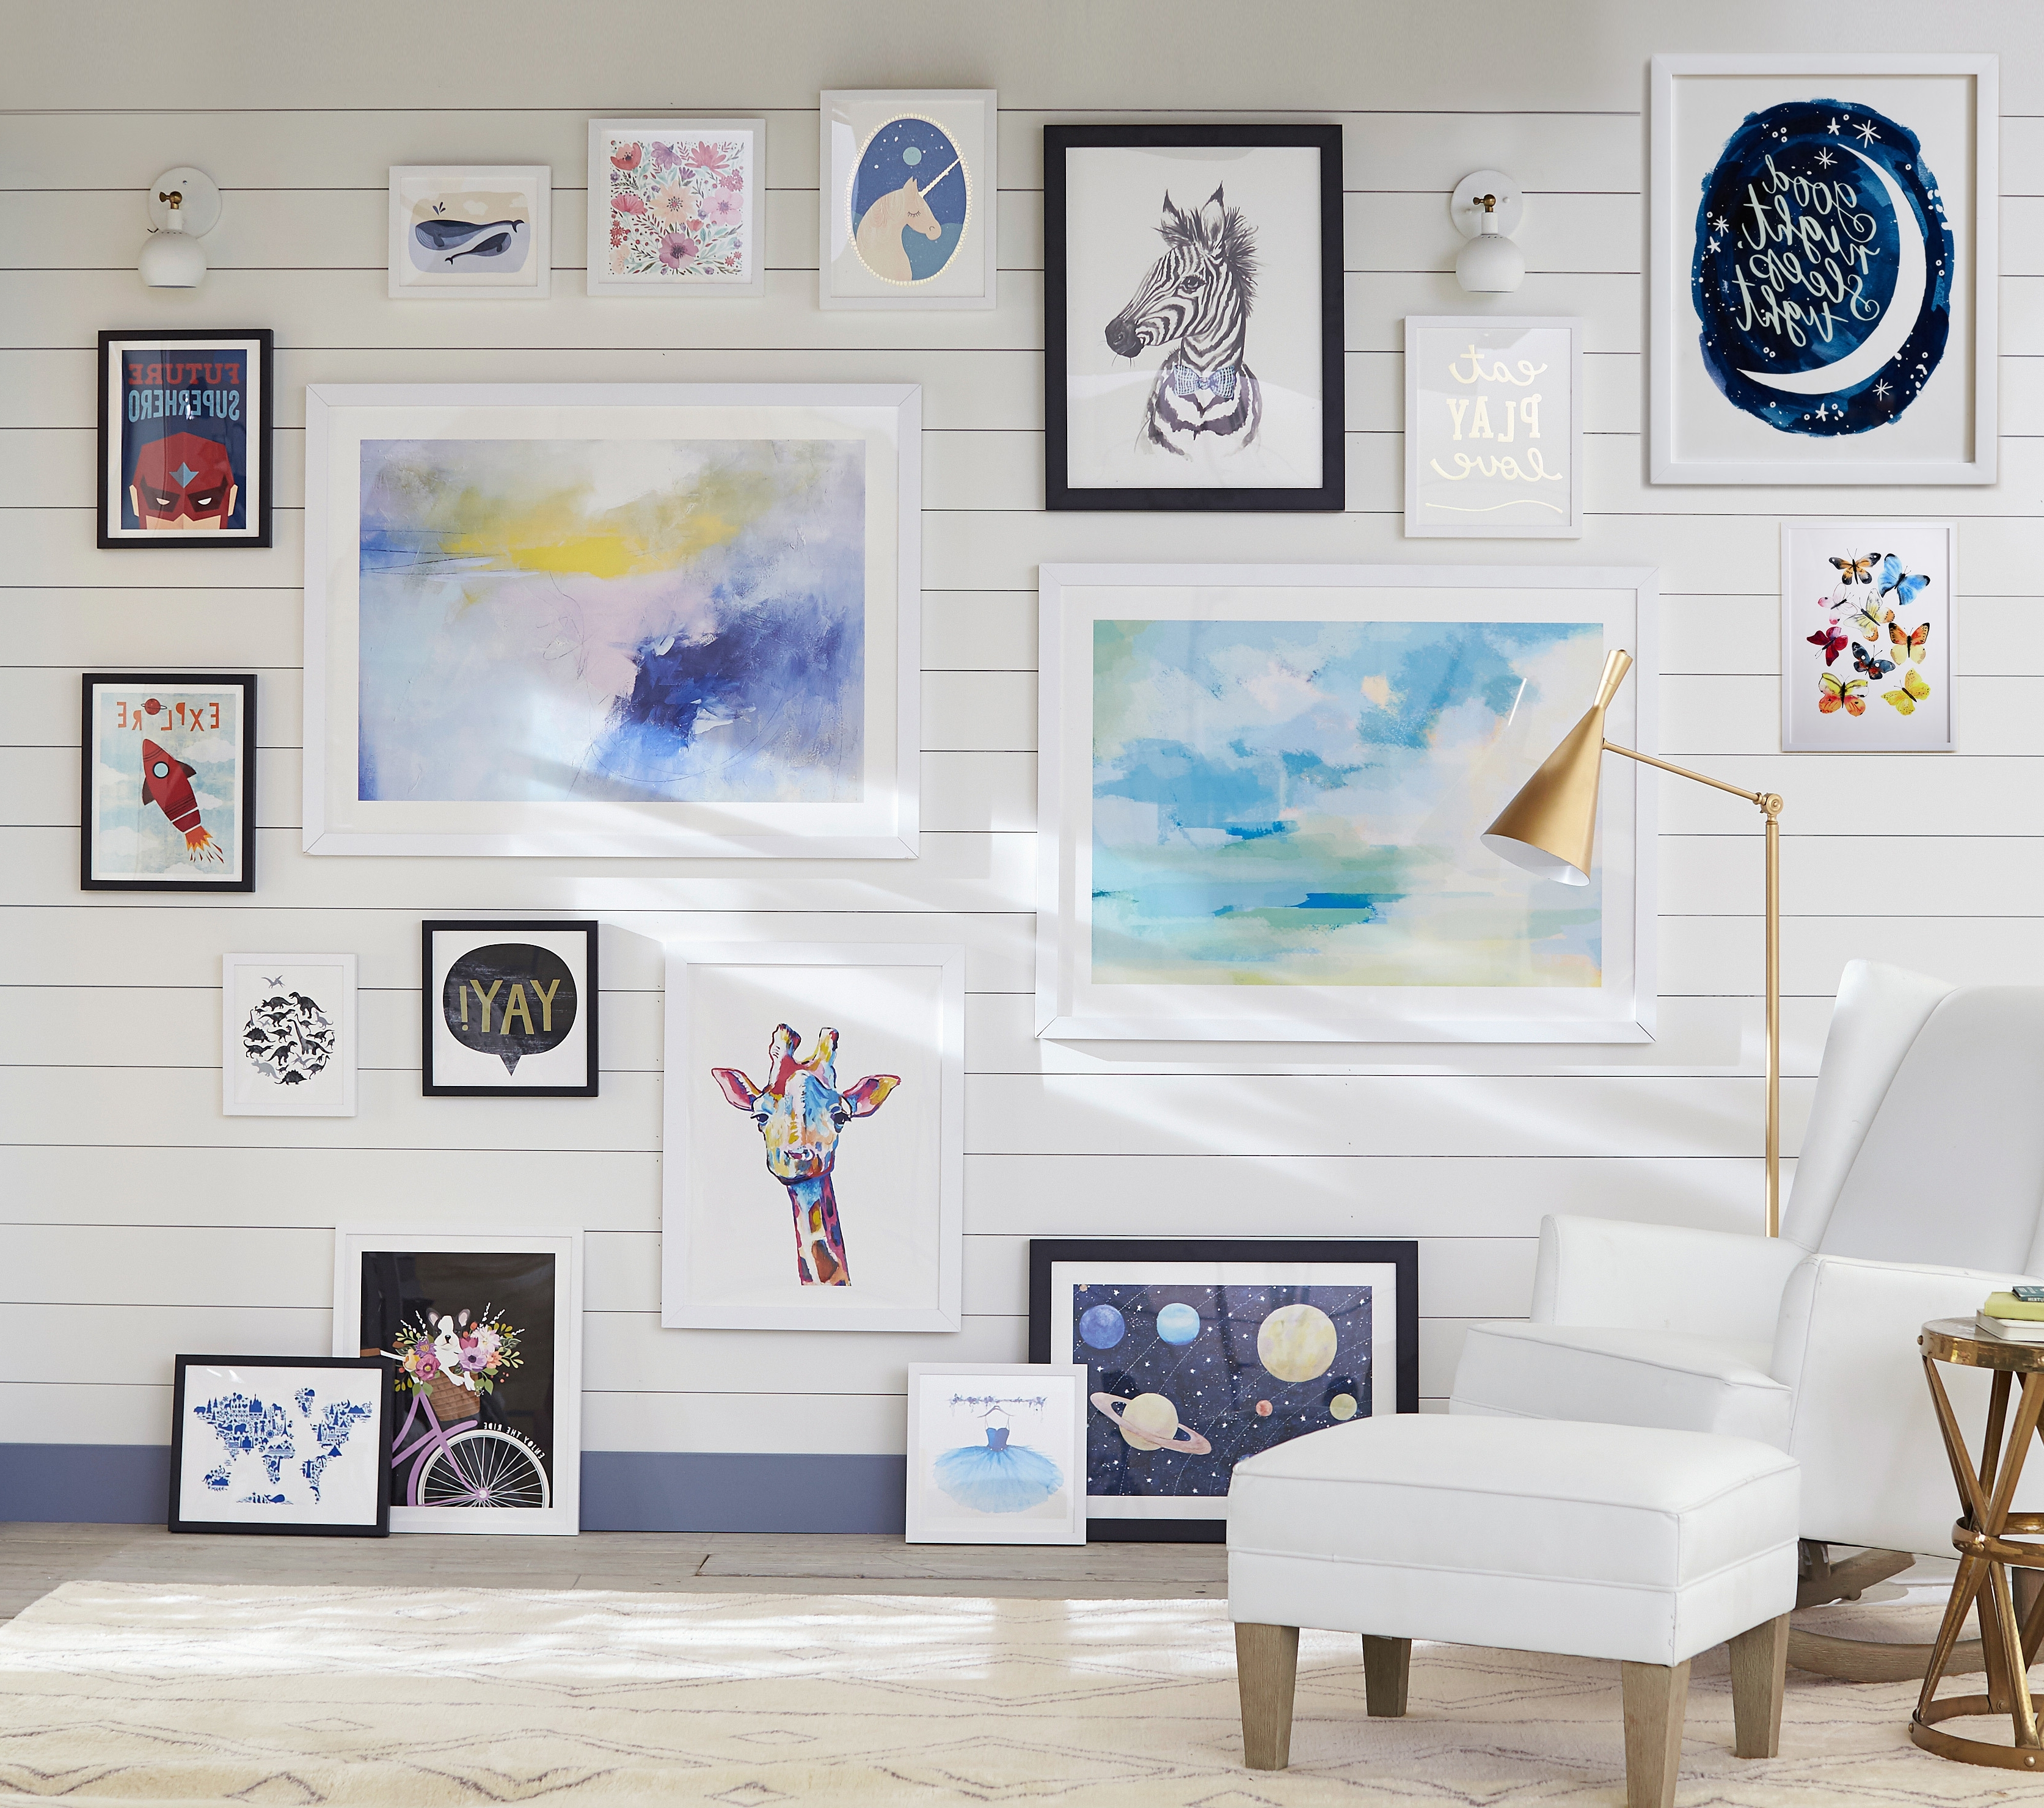 Trendy Pottery Barn Kids And Pbteen Debut Exclusive Wall Art Collection Throughout Pottery Barn Wall Art (View 7 of 15)